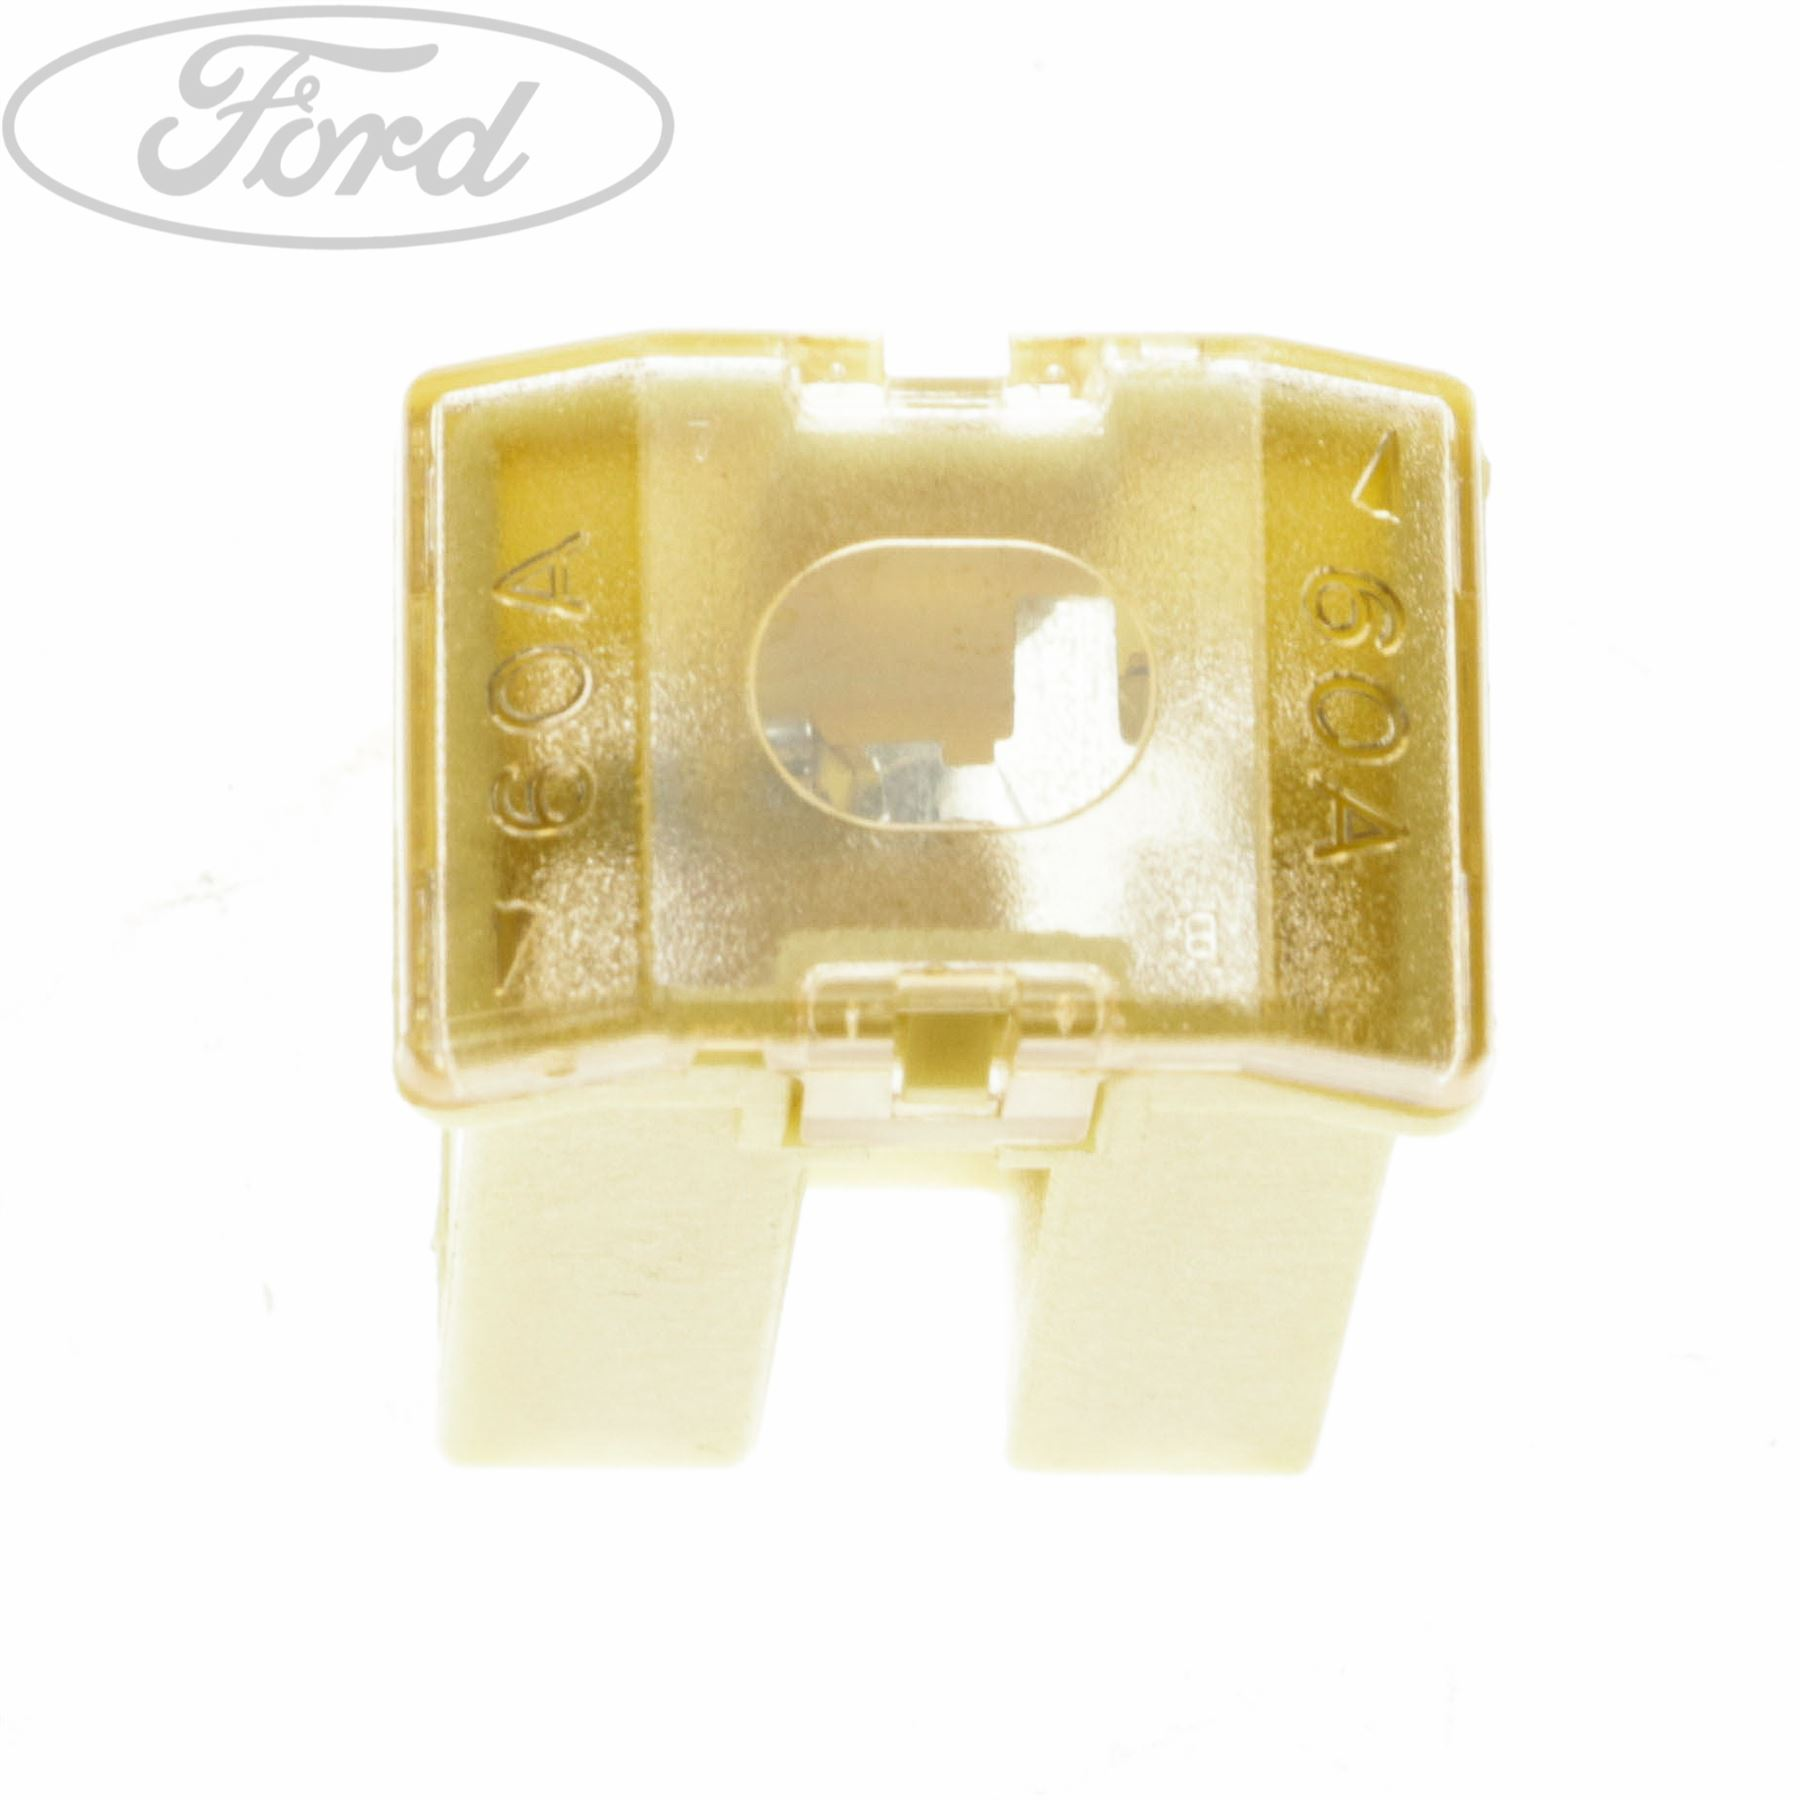 details about genuine ford mondeo mk3 60 amp fuse 4328345